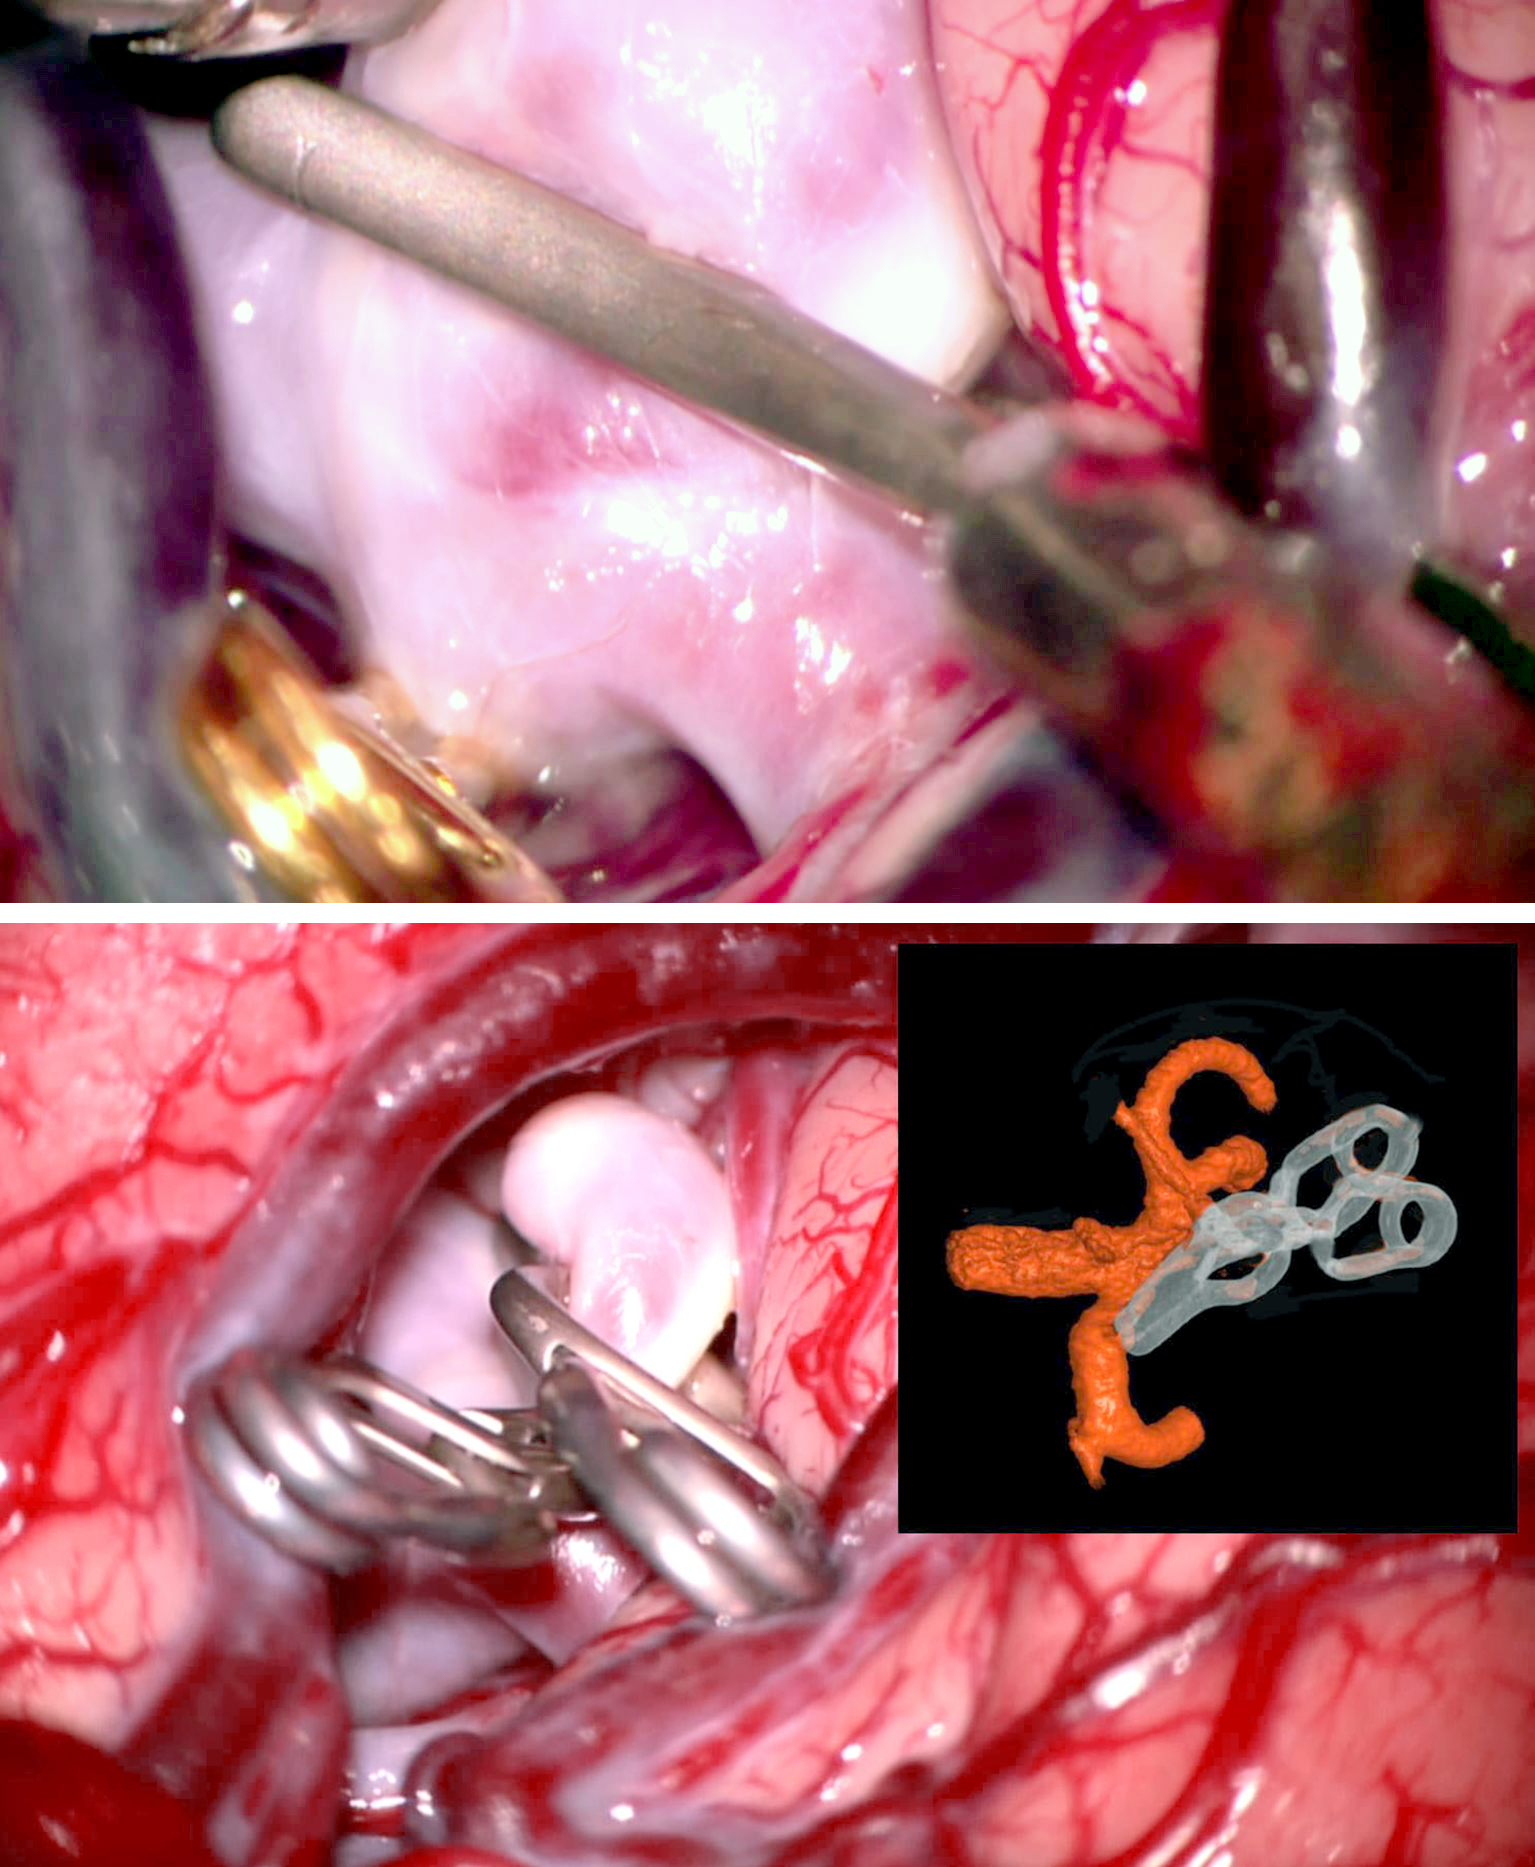 Figure 12: A typical broad-based MCA aneurysm was clipped using a curved clip parallel to the axis of the M2's. The second tandem fenestrated clip provides additional support for the closure of the distal neck.